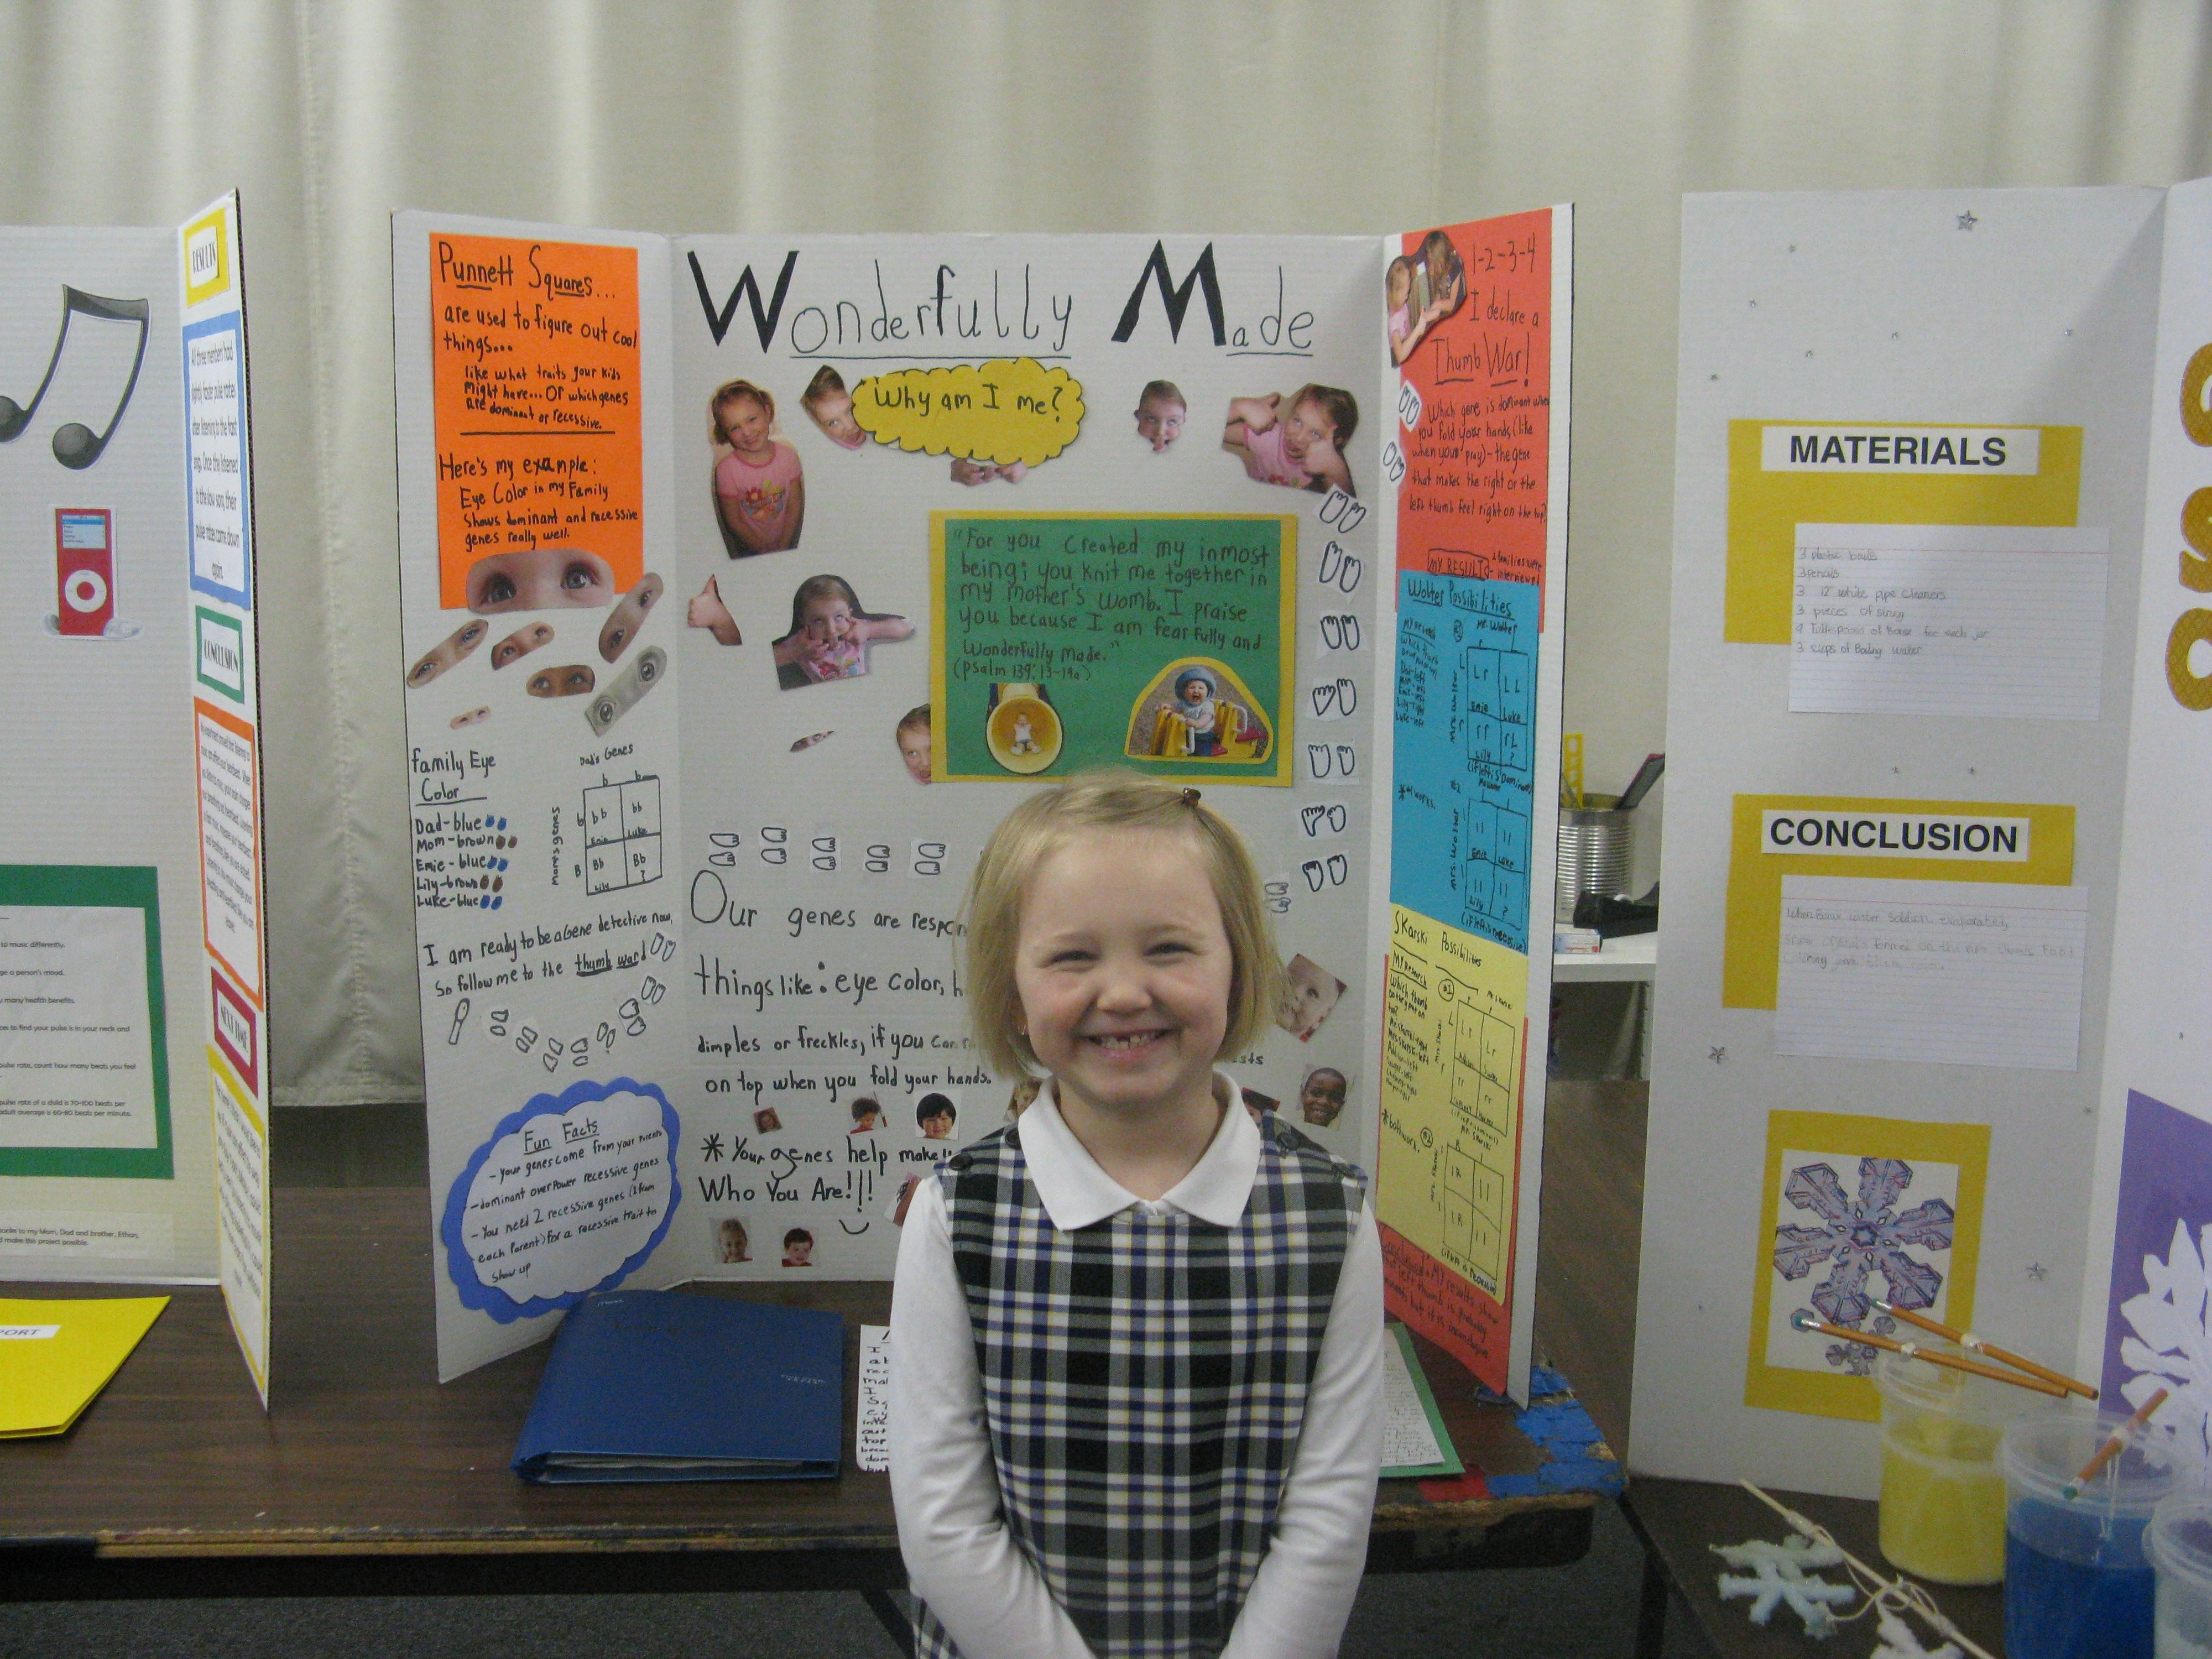 10 Awesome Second Grade Science Fair Project Ideas things ive learned from a second grade science project 5 2020